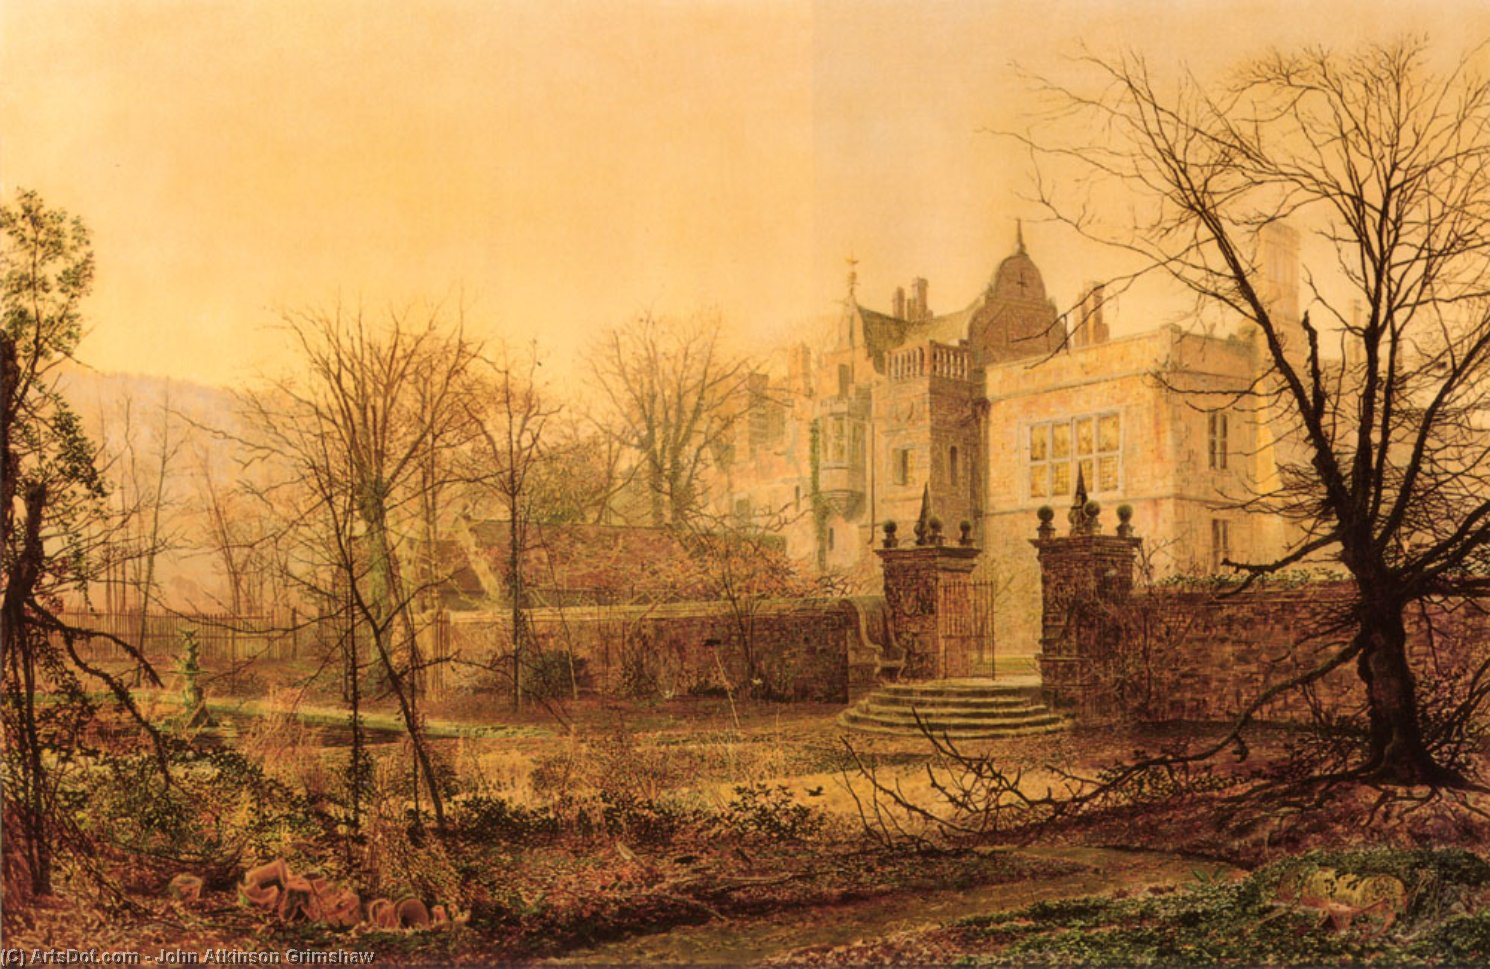 knostrop hall early morning by John Atkinson Grimshaw (1836-1893, United Kingdom)